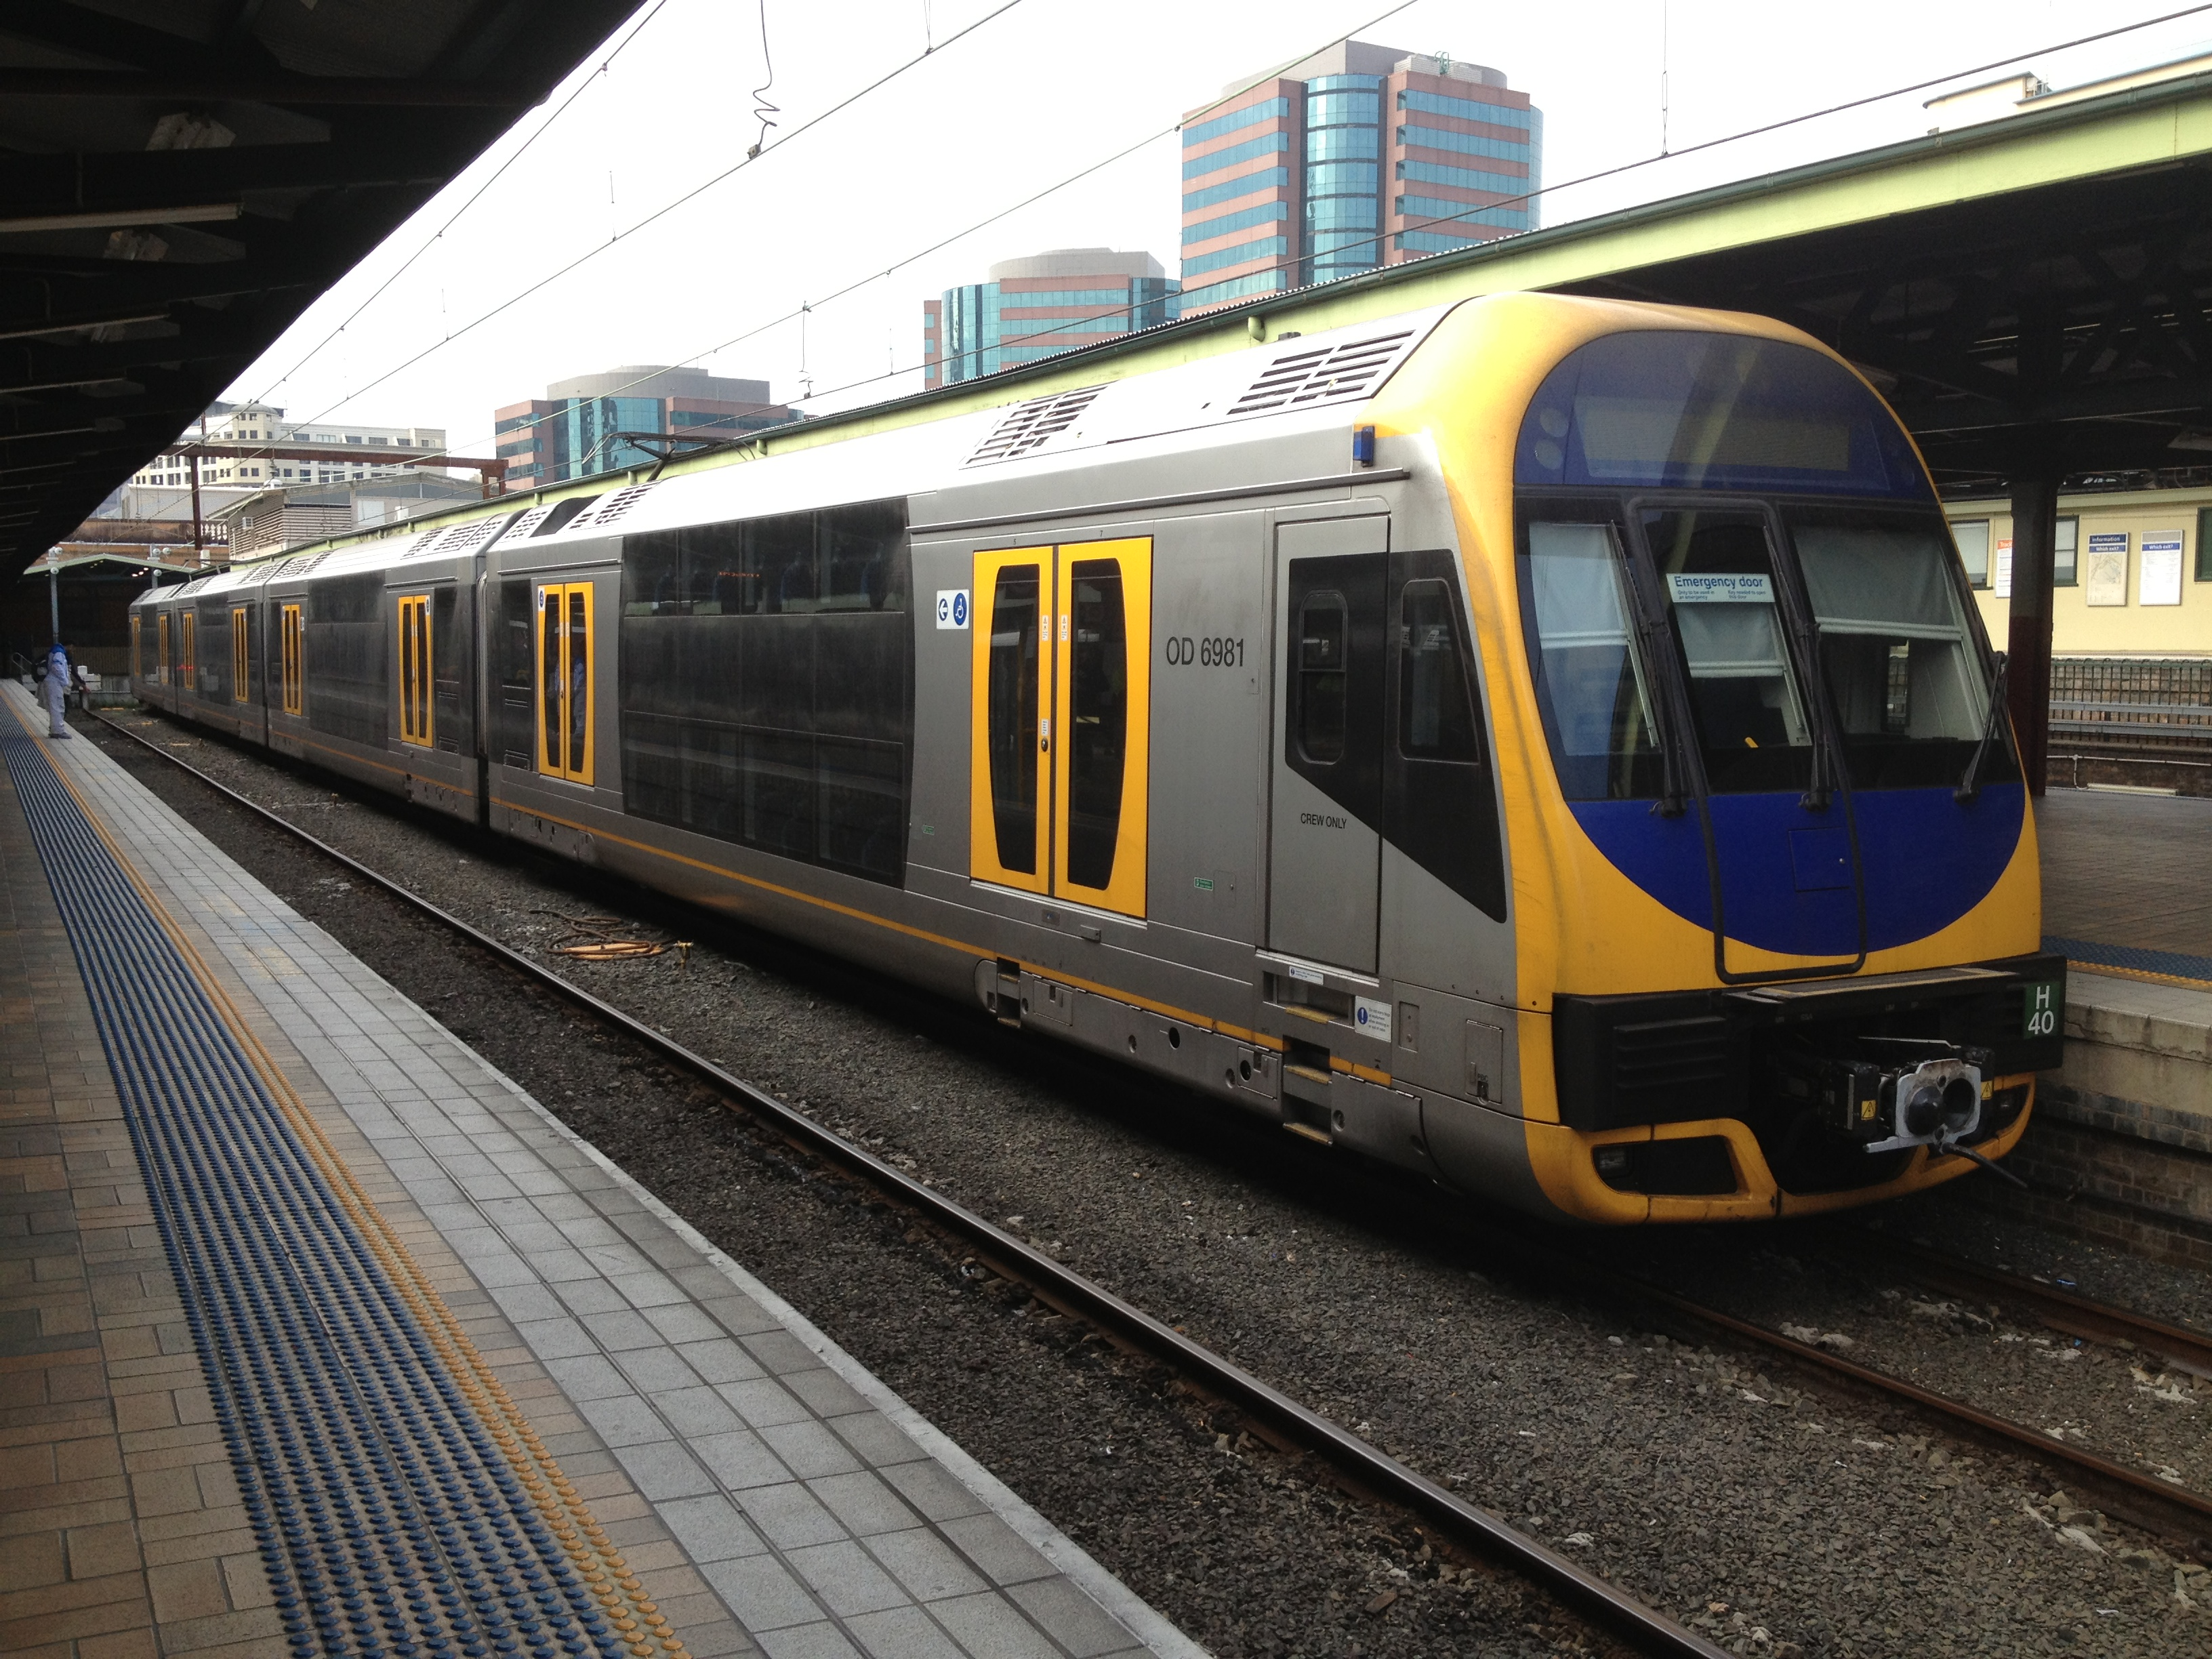 sydney trains - photo #14